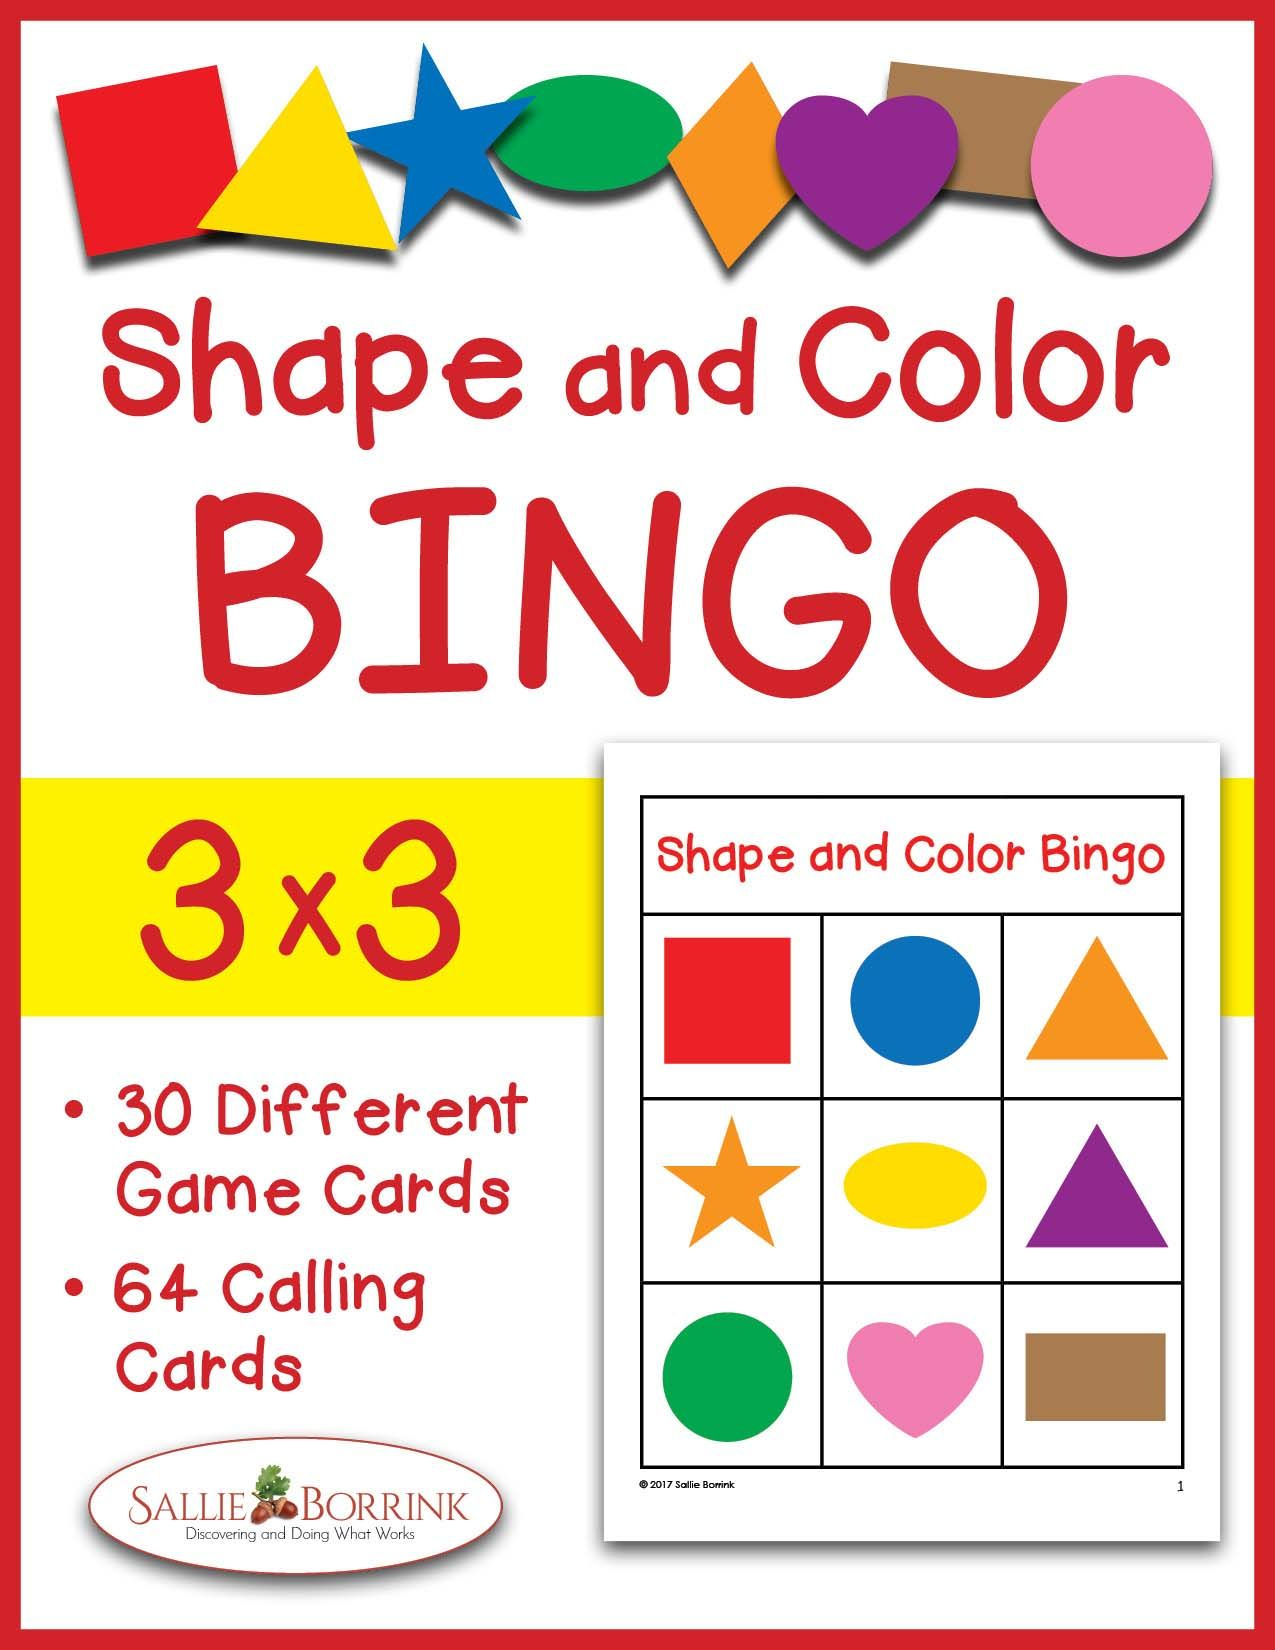 Shapes And Colors Bingo Game Cards 3X3 | Card Games